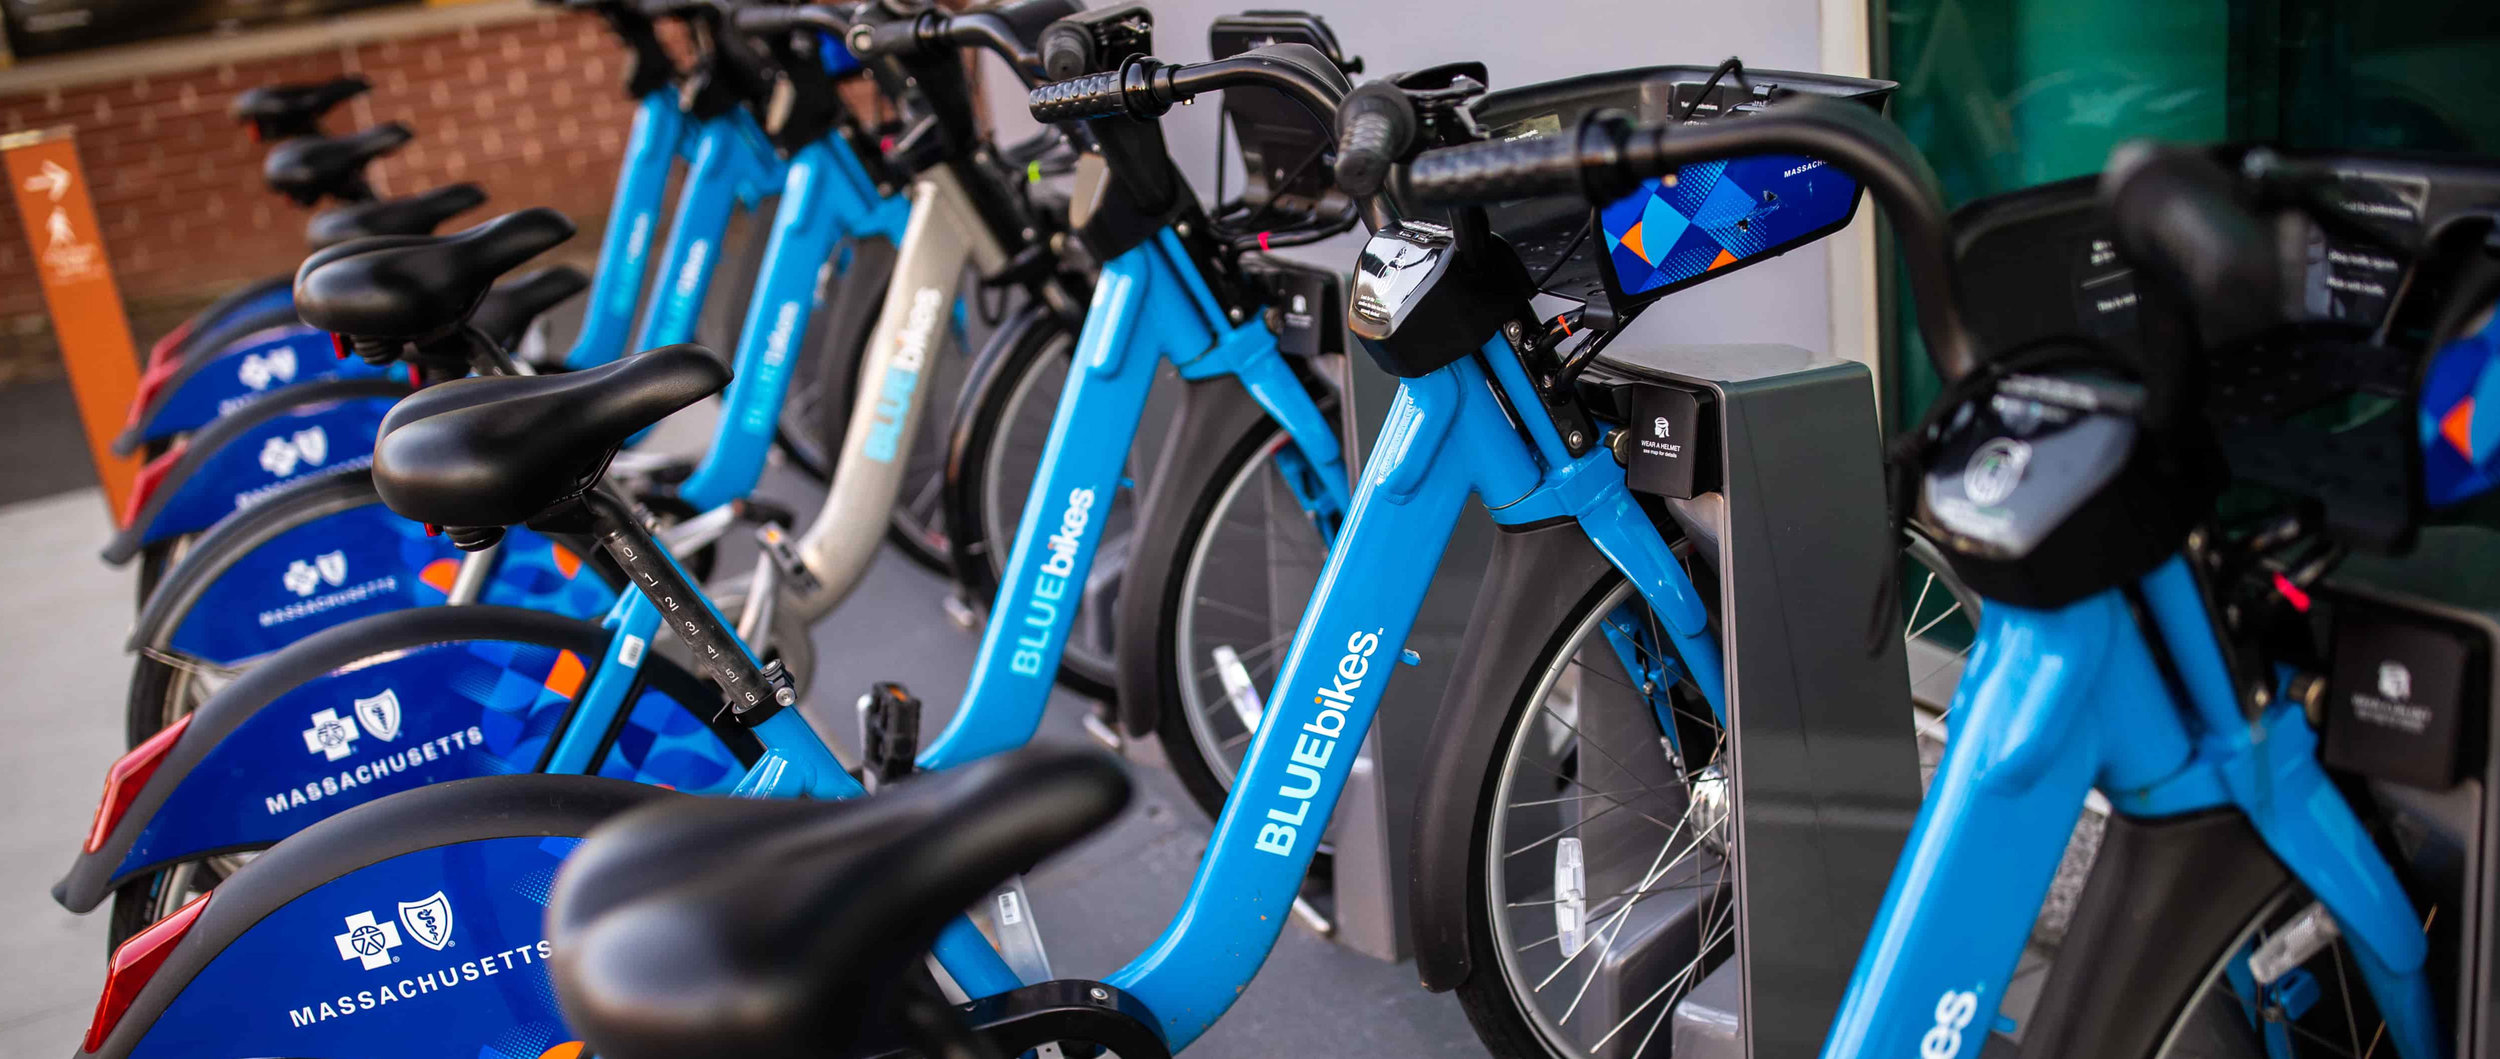 Bluebikes Benefit Program for Assembly Row Residents